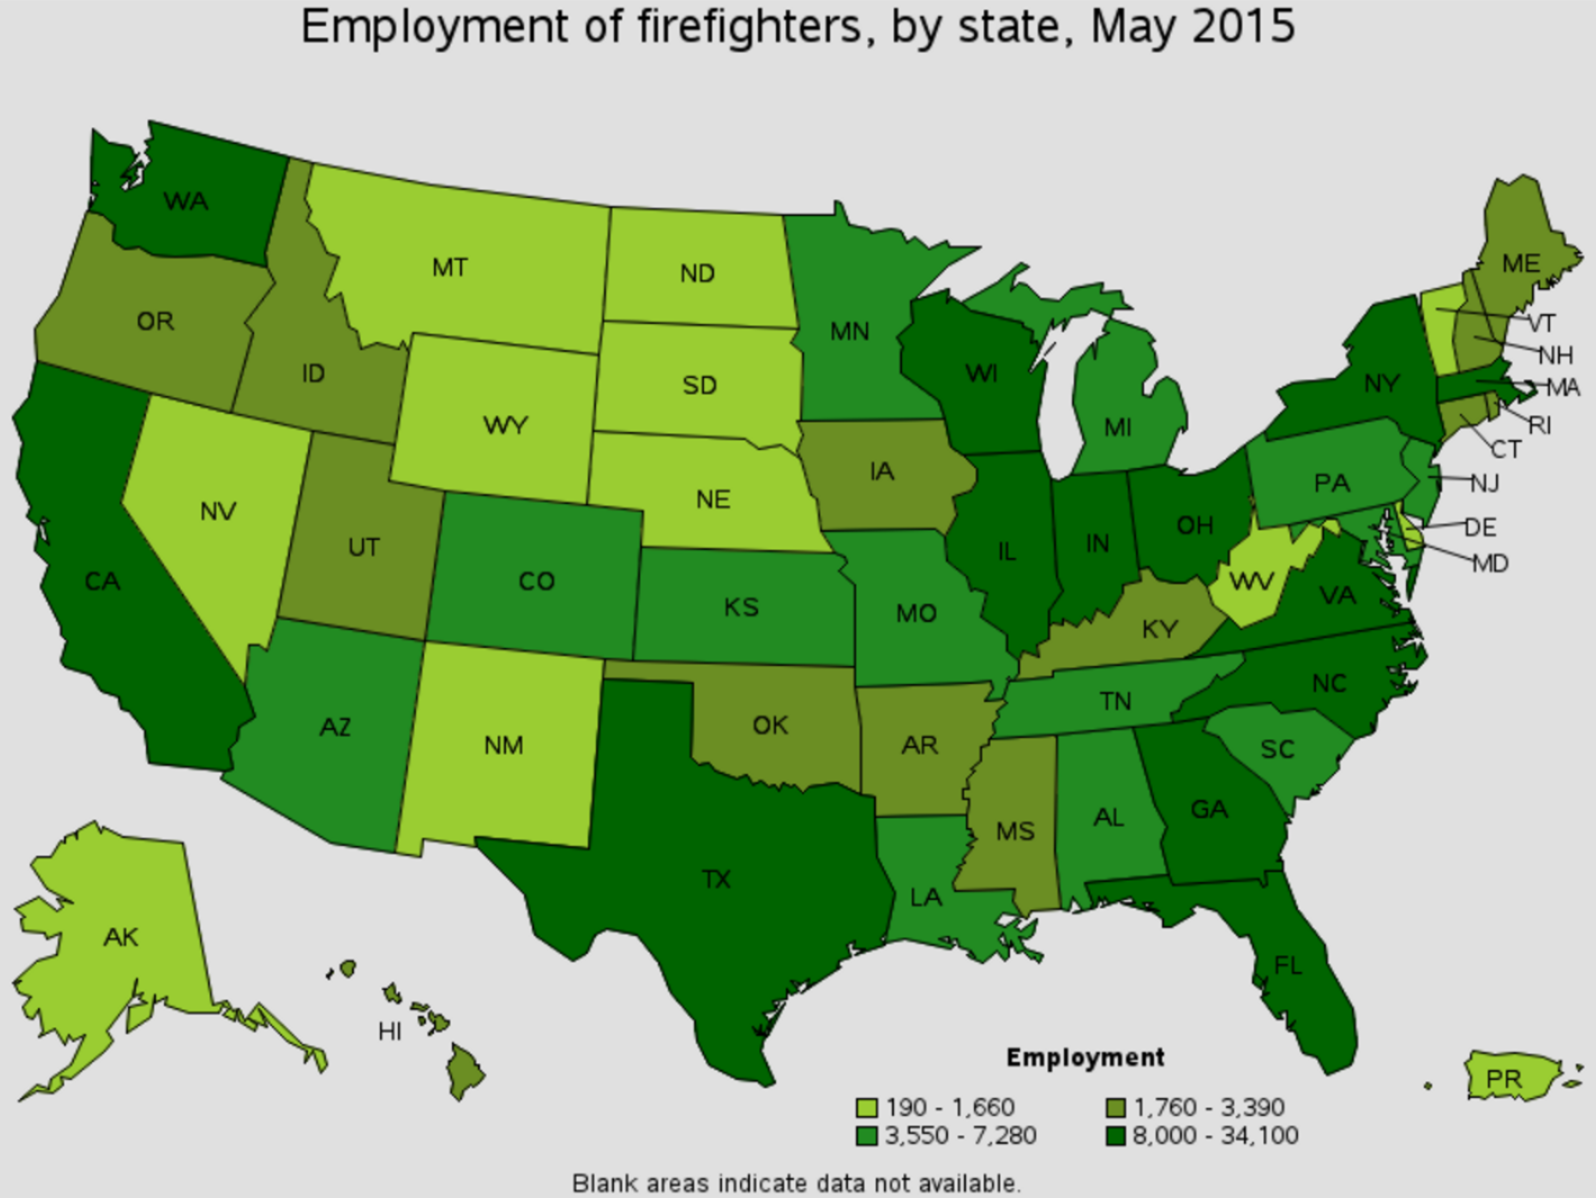 firefighter job outlook by state Wadley Alabama